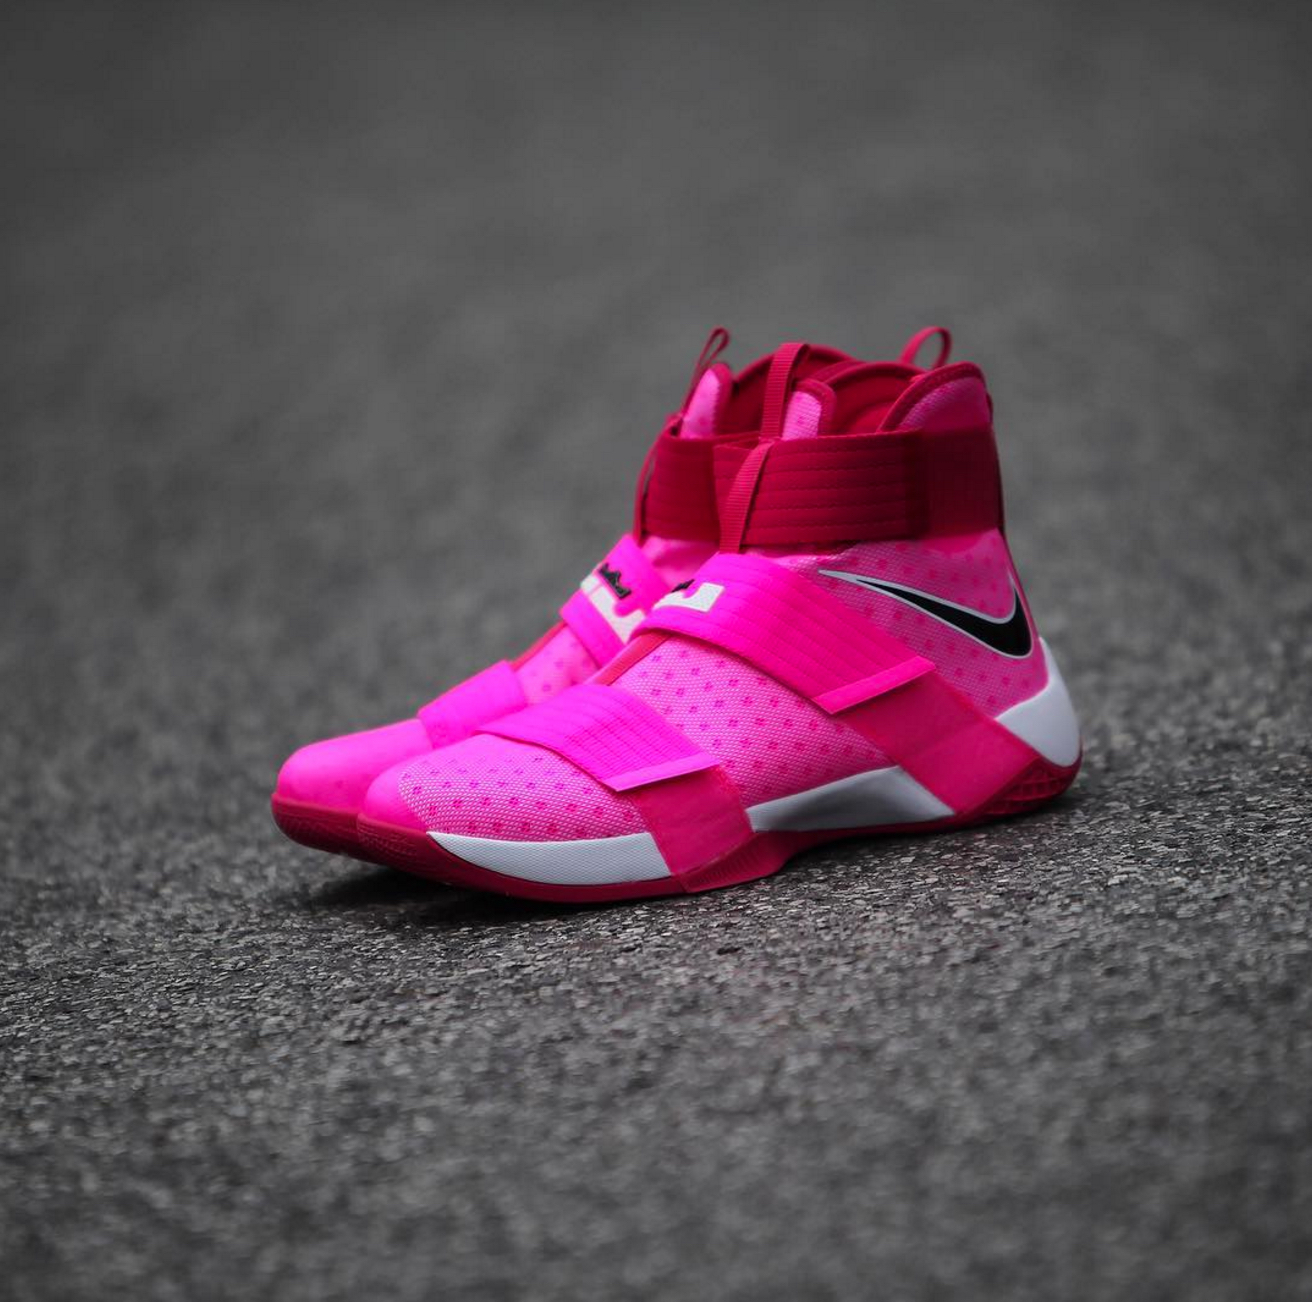 9dbb087cc55 nike lebron soldier 10 breast cancer 2 - WearTesters